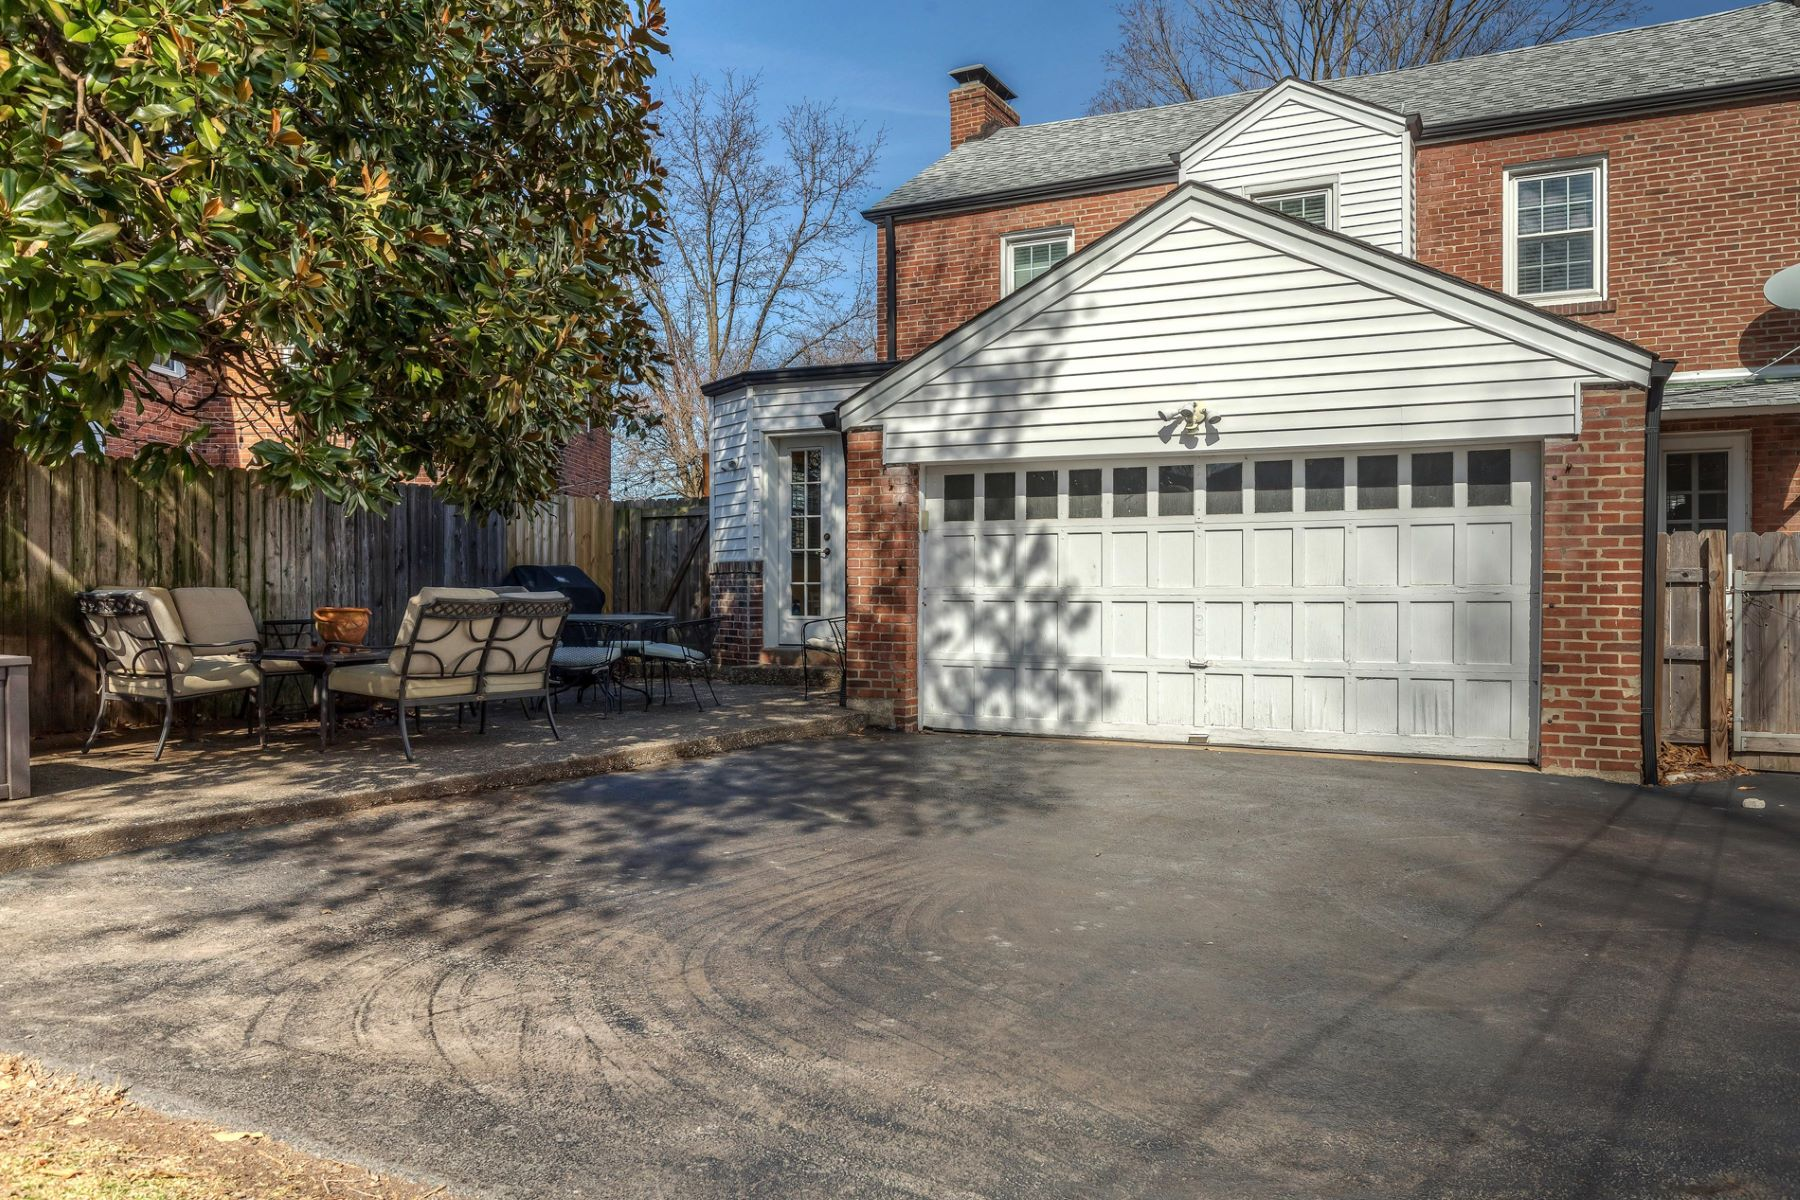 Additional photo for property listing at Teasdale Ave 8040 Teasdale Ave University City, Missouri 63130 United States